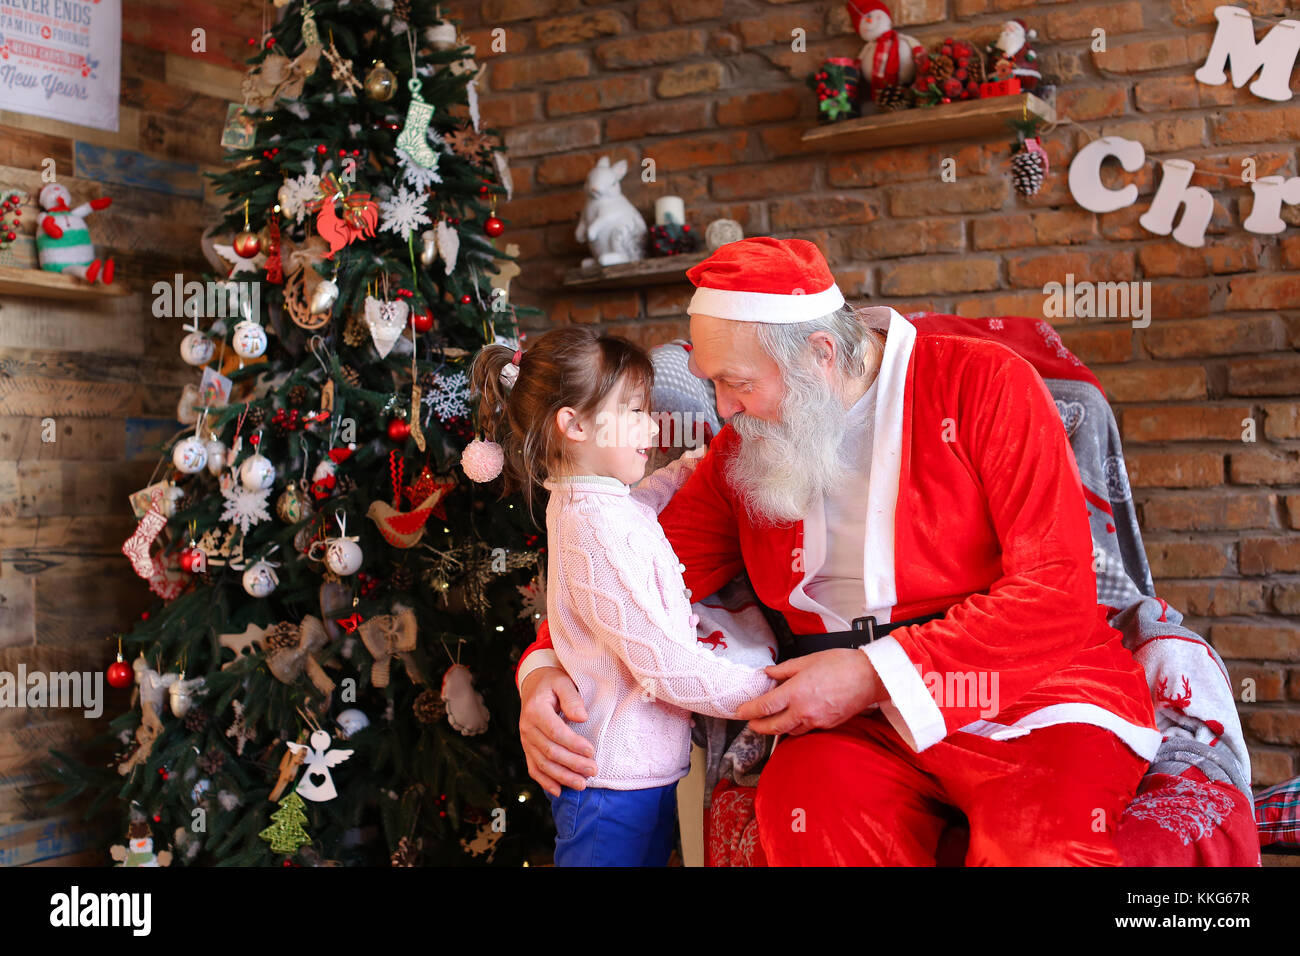 A Wish For Christmas.Little Girl Hugs Santa Claus And Makes Wish For Christmas In